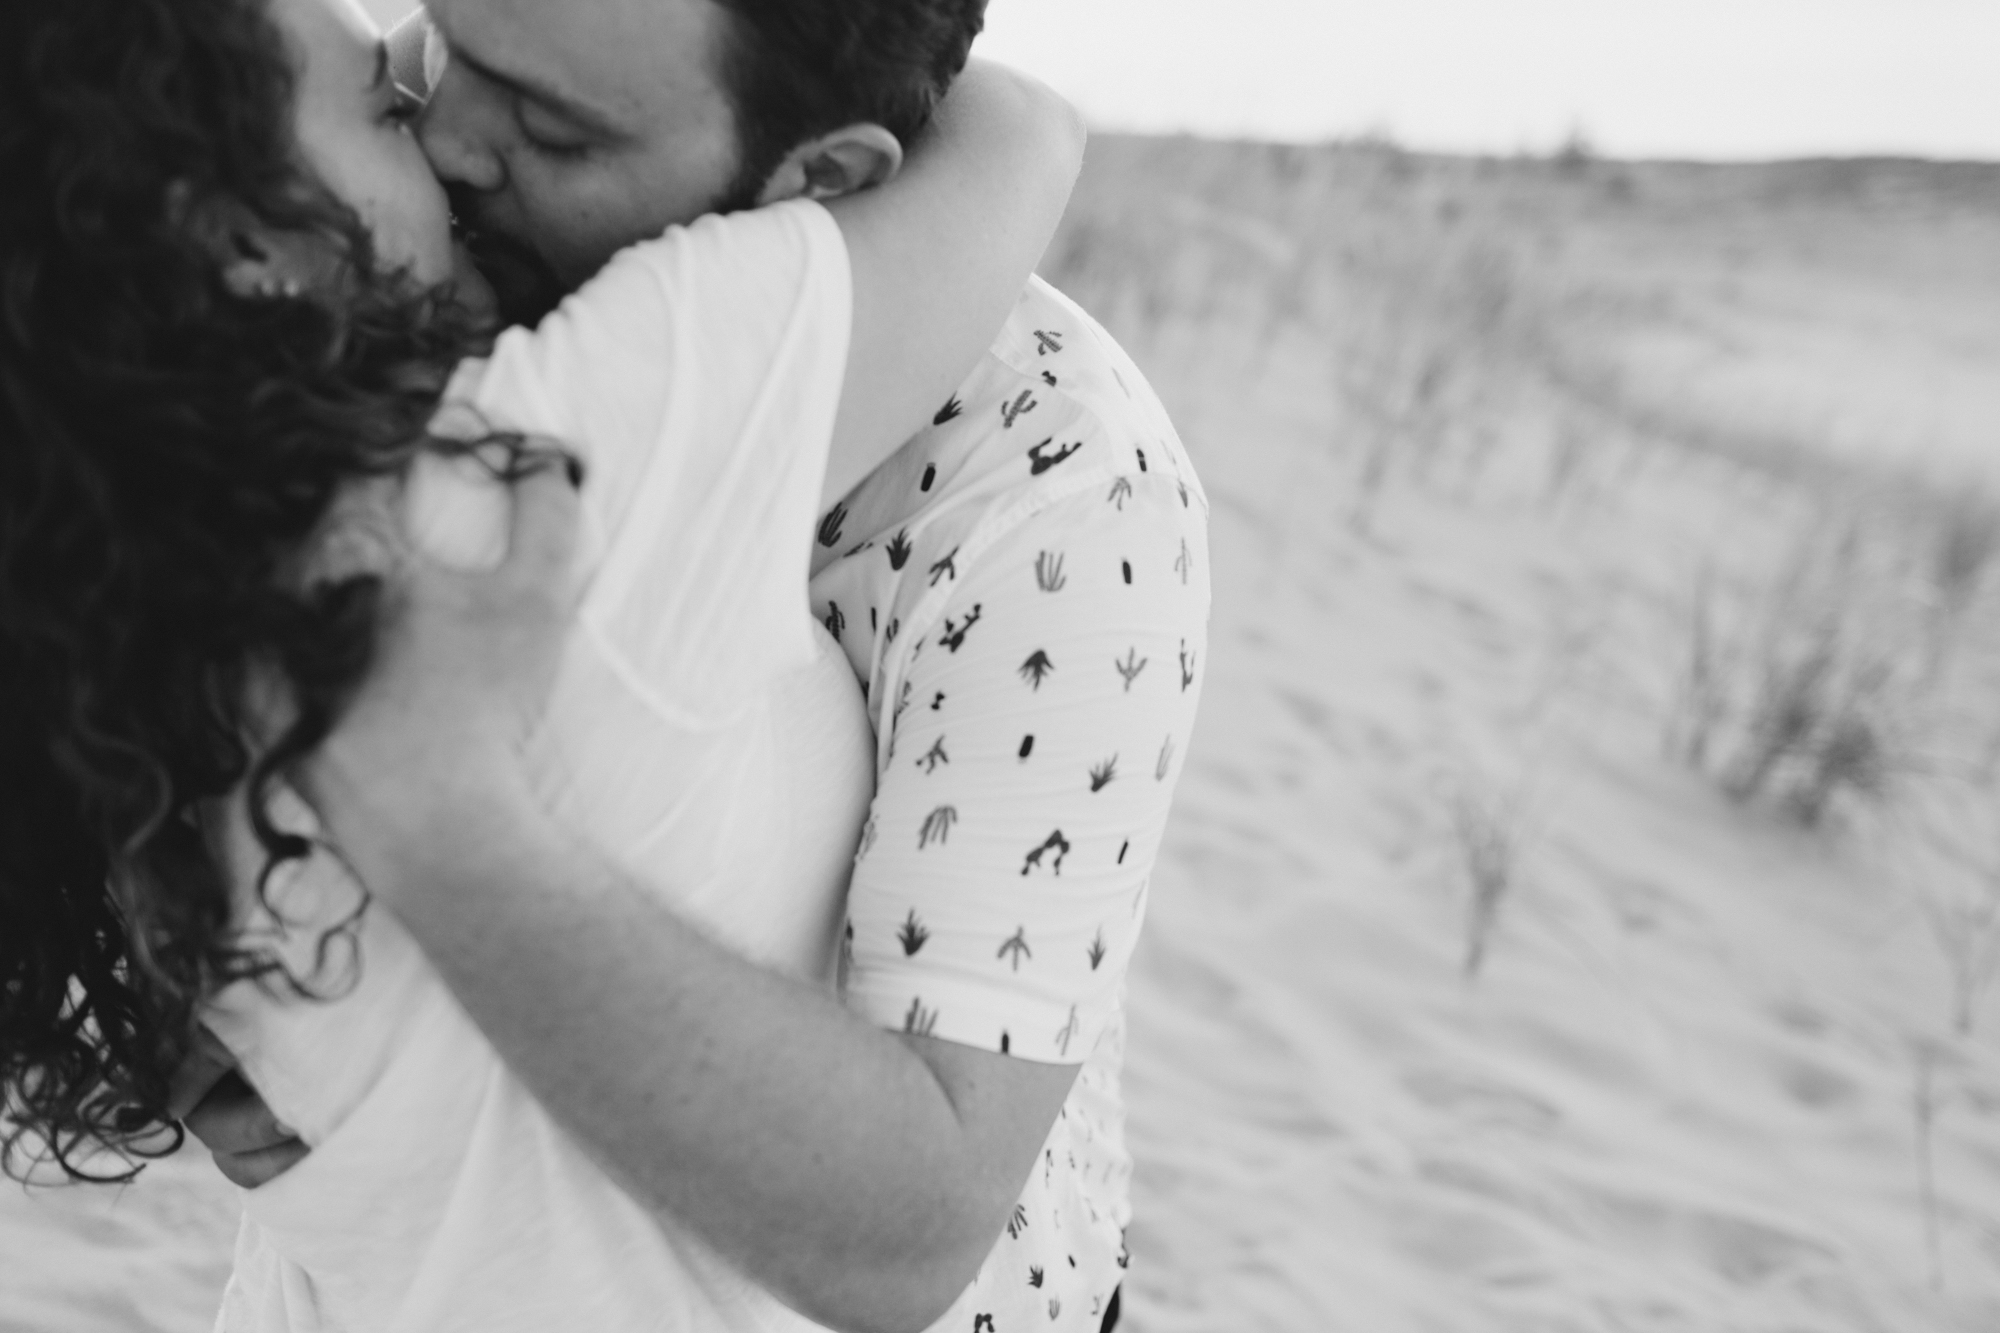 Northern Michigan Sleeping Bear Dunes Wedding Engagement Photographer Mae Stier-022.jpg